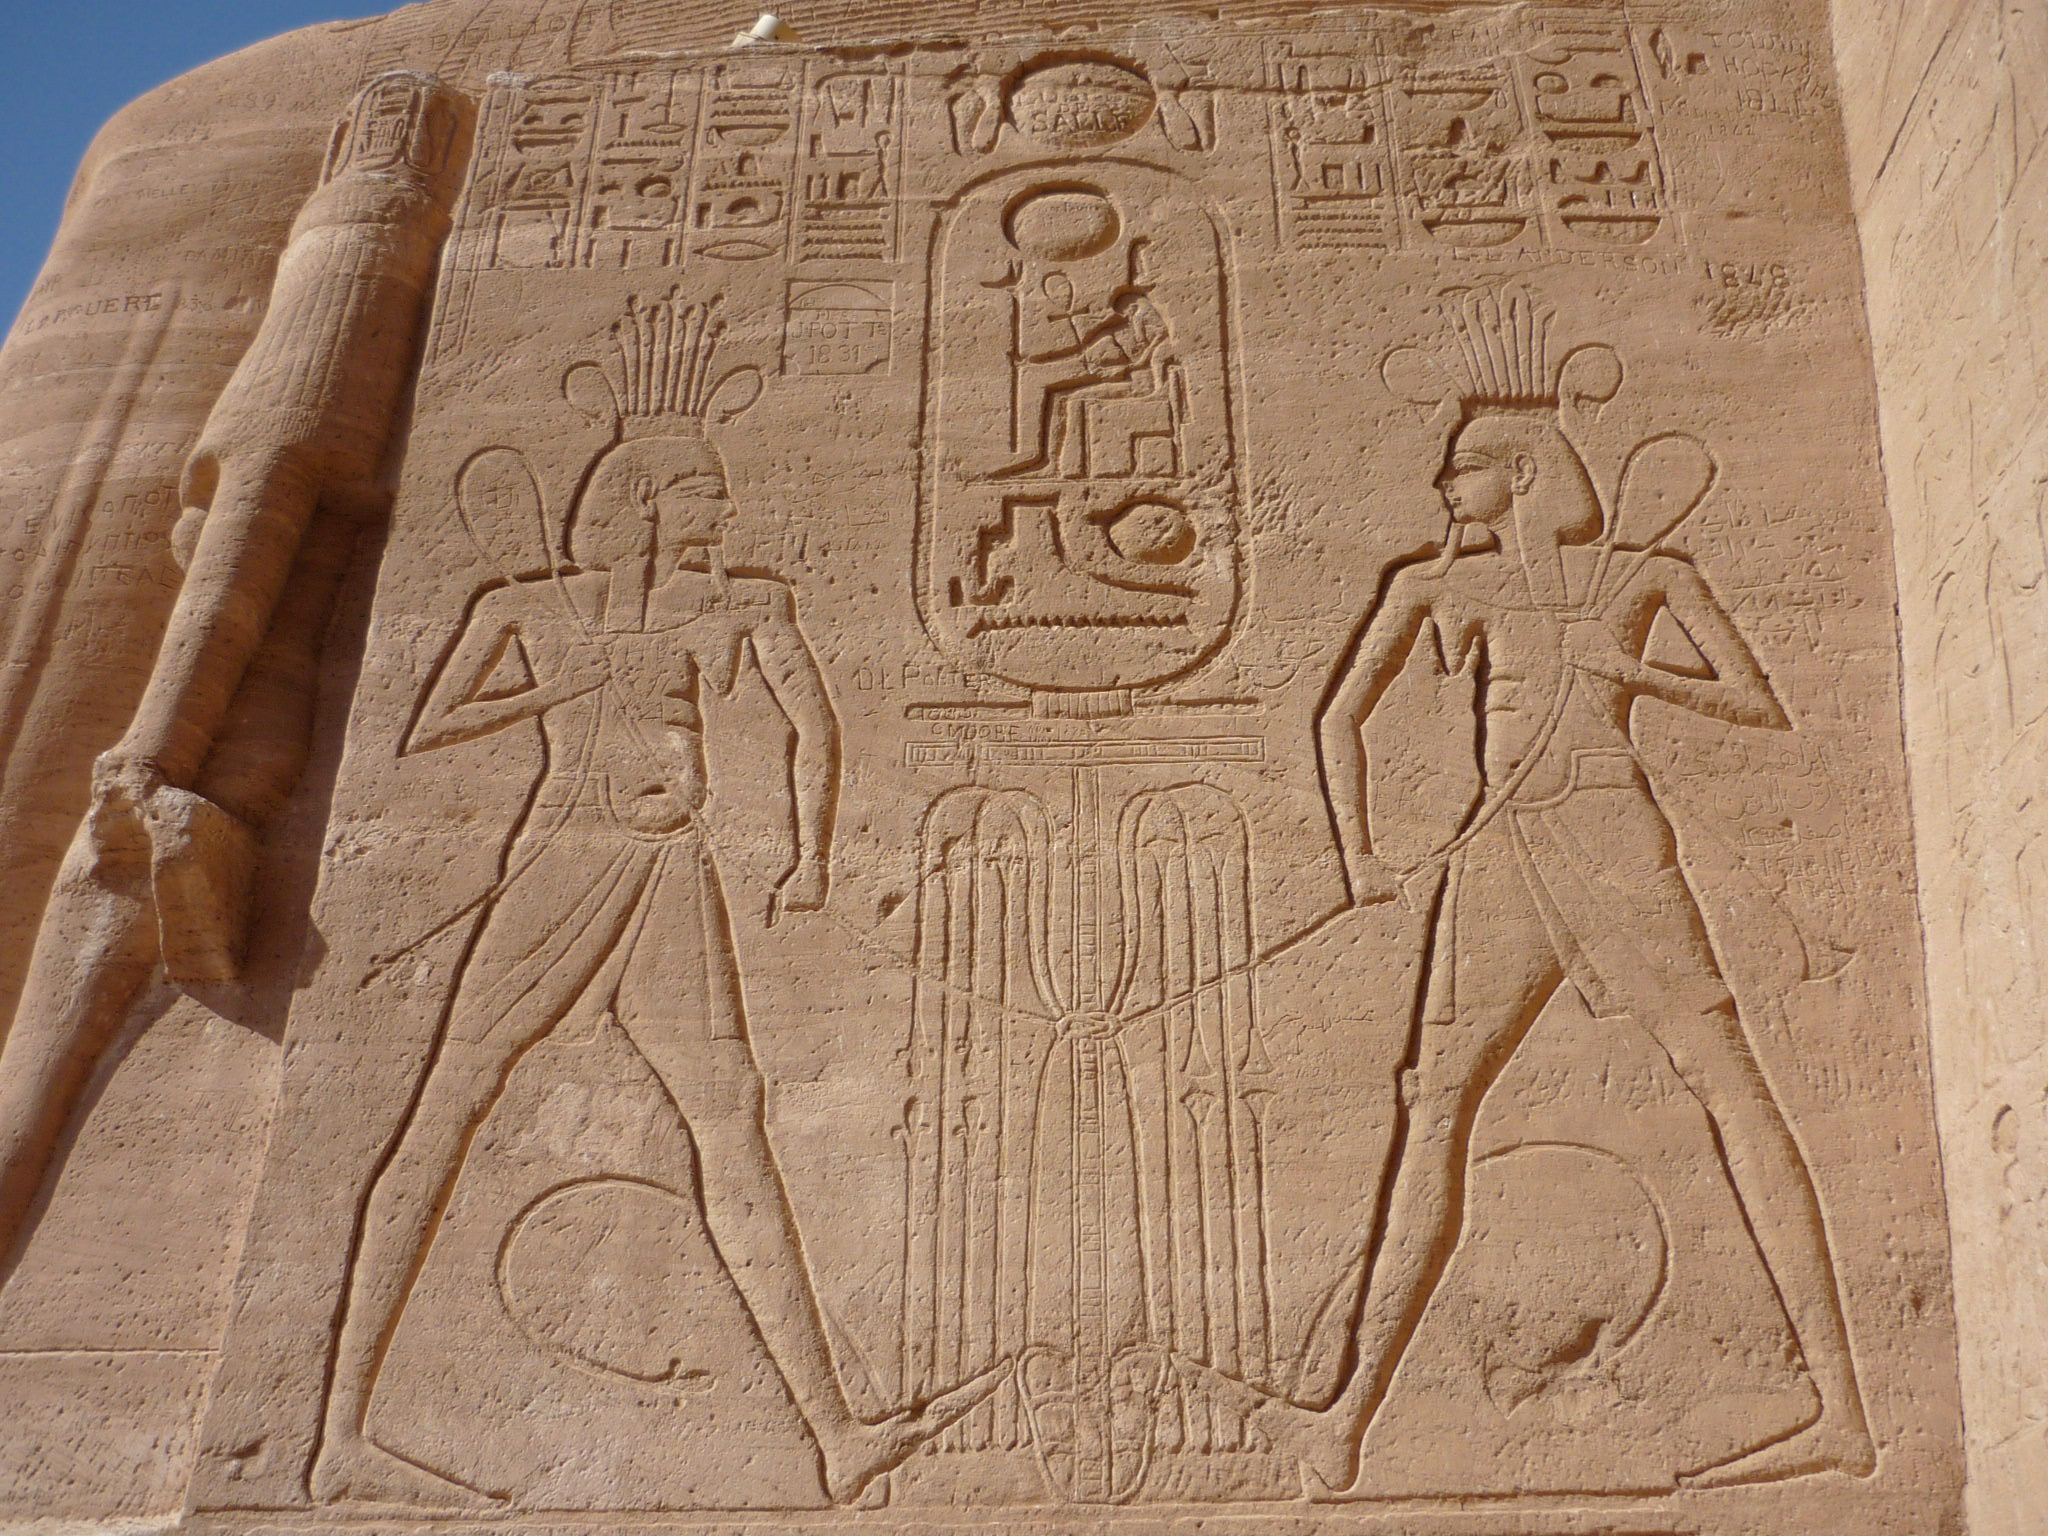 http://upload.wikimedia.org/wikipedia/commons/d/dd/H%C3%A2py_Sema-Taouy_Abou_Simbel.JPG